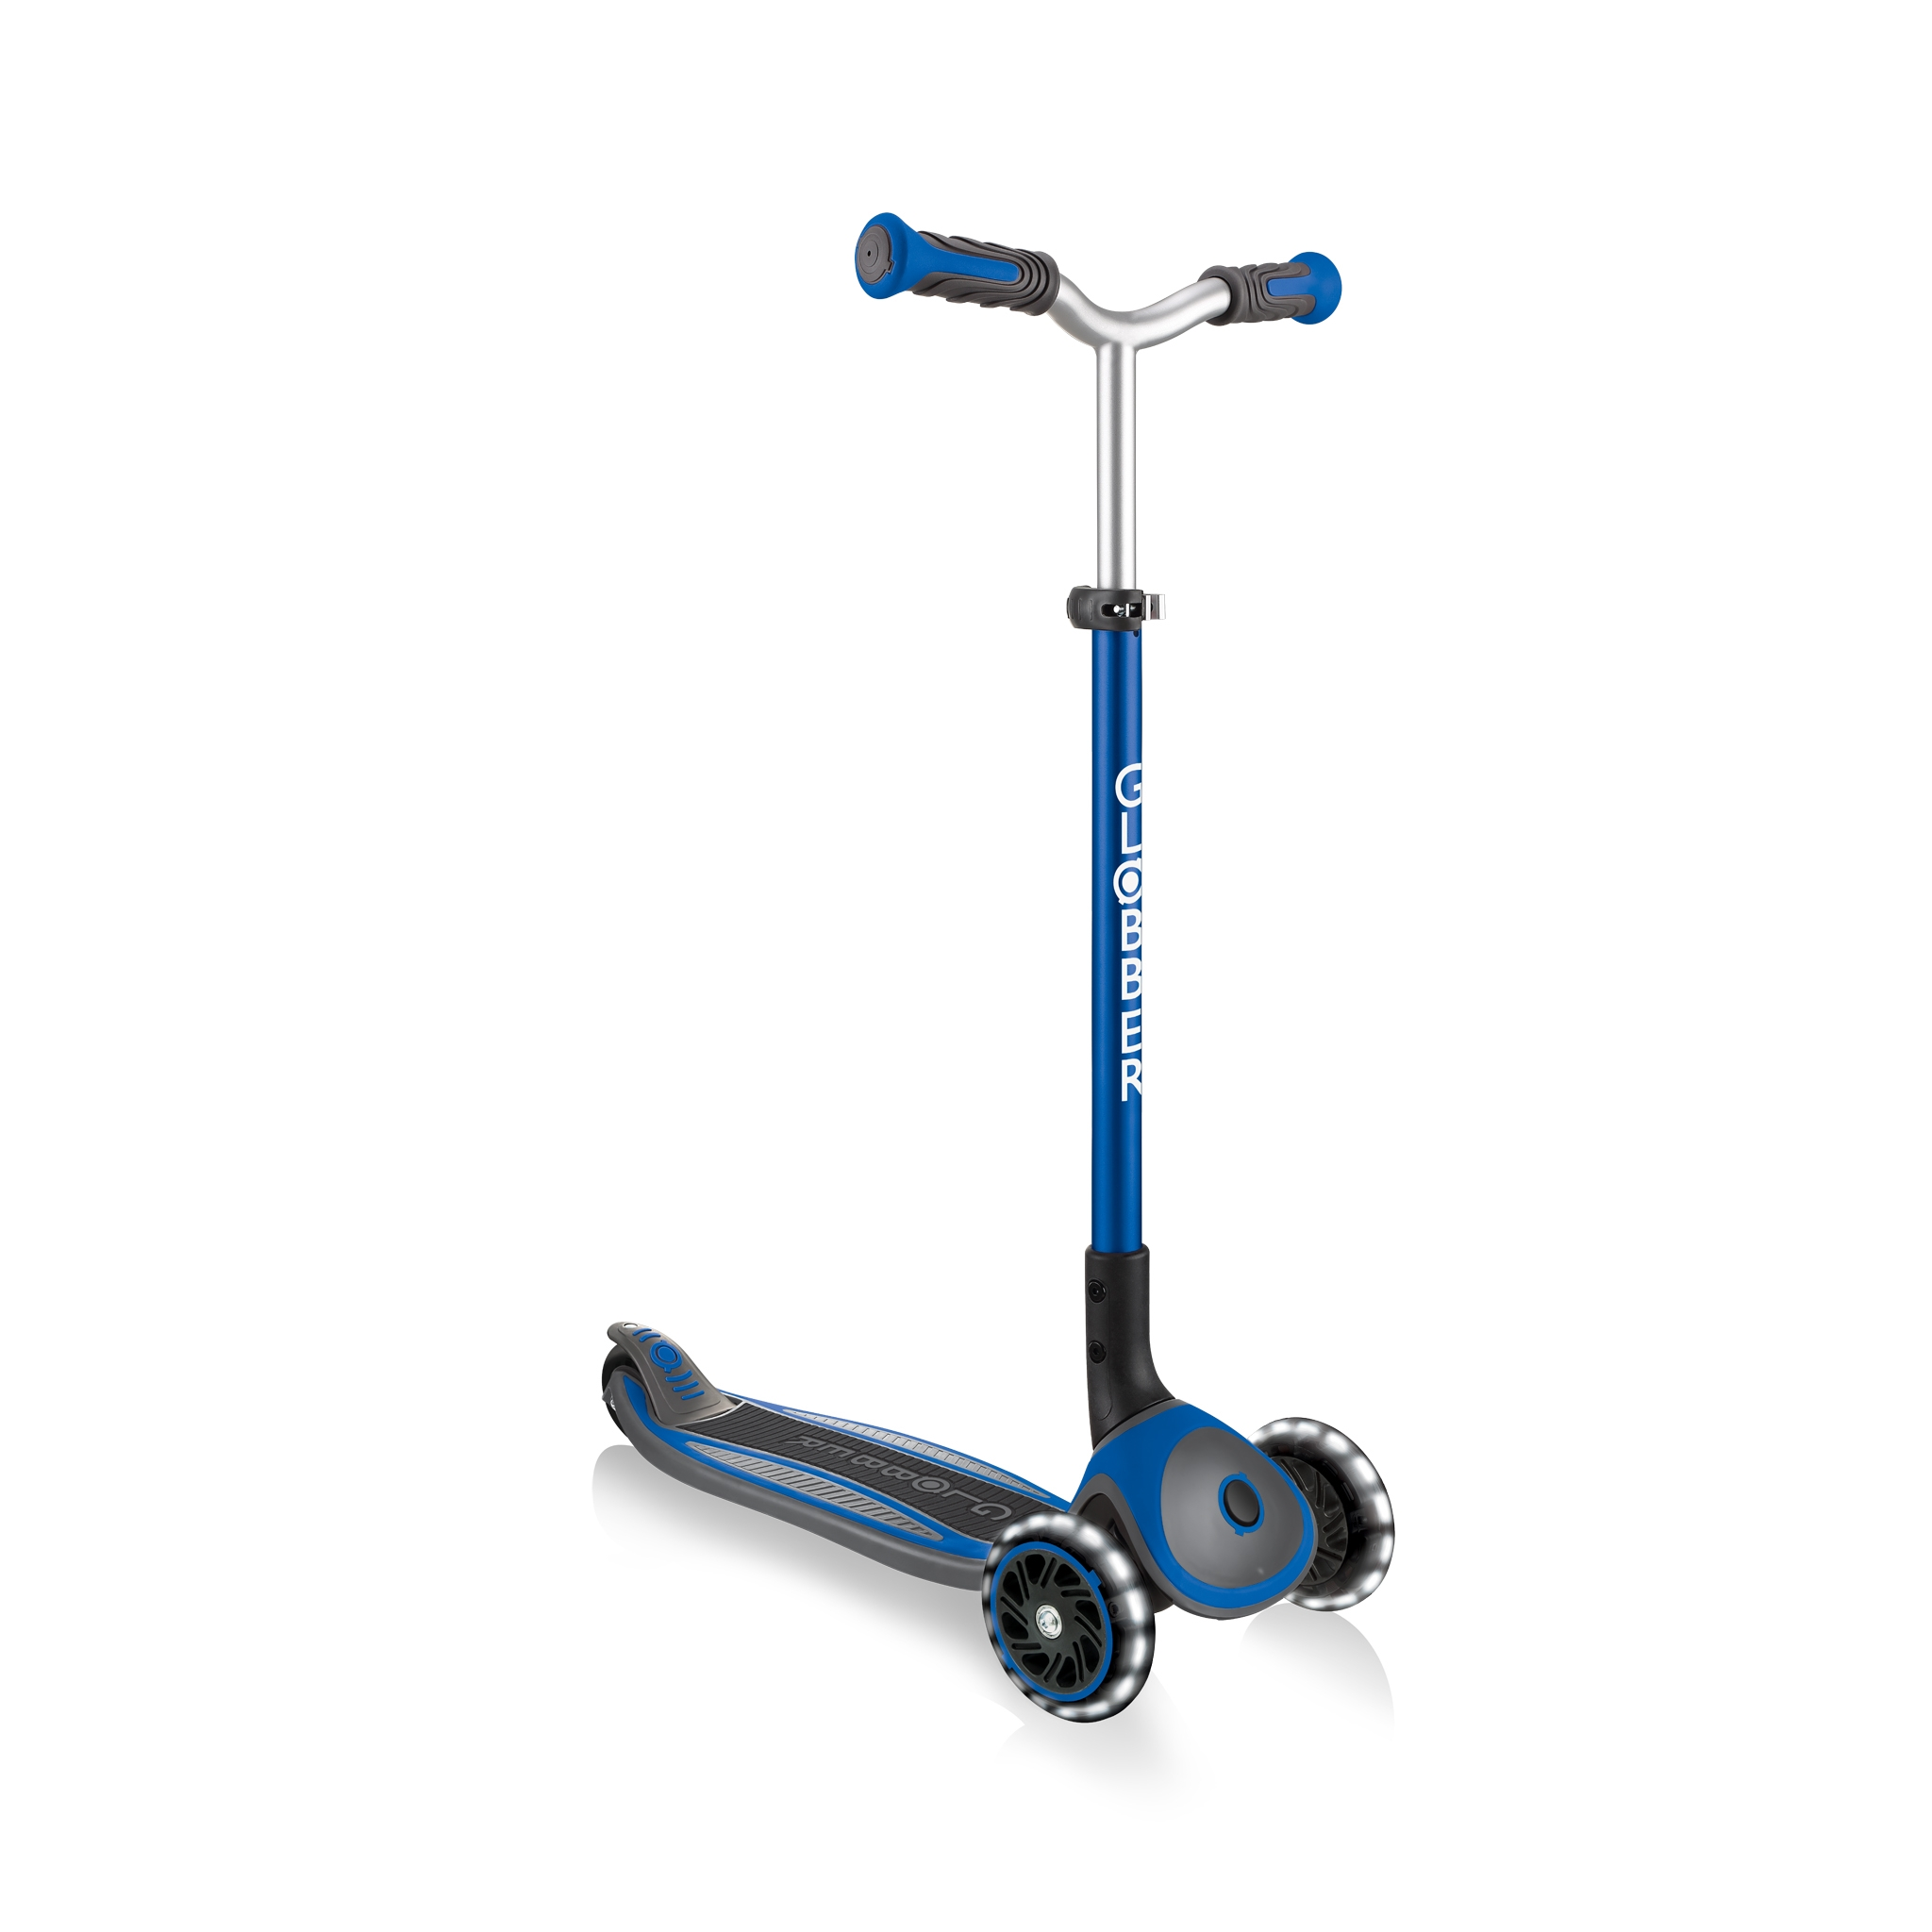 Globber-MASTER-LIGHTS-premium-3-wheel-foldable-light-up-scooter-for-kids-aged-4-to-14_dark-blue 1